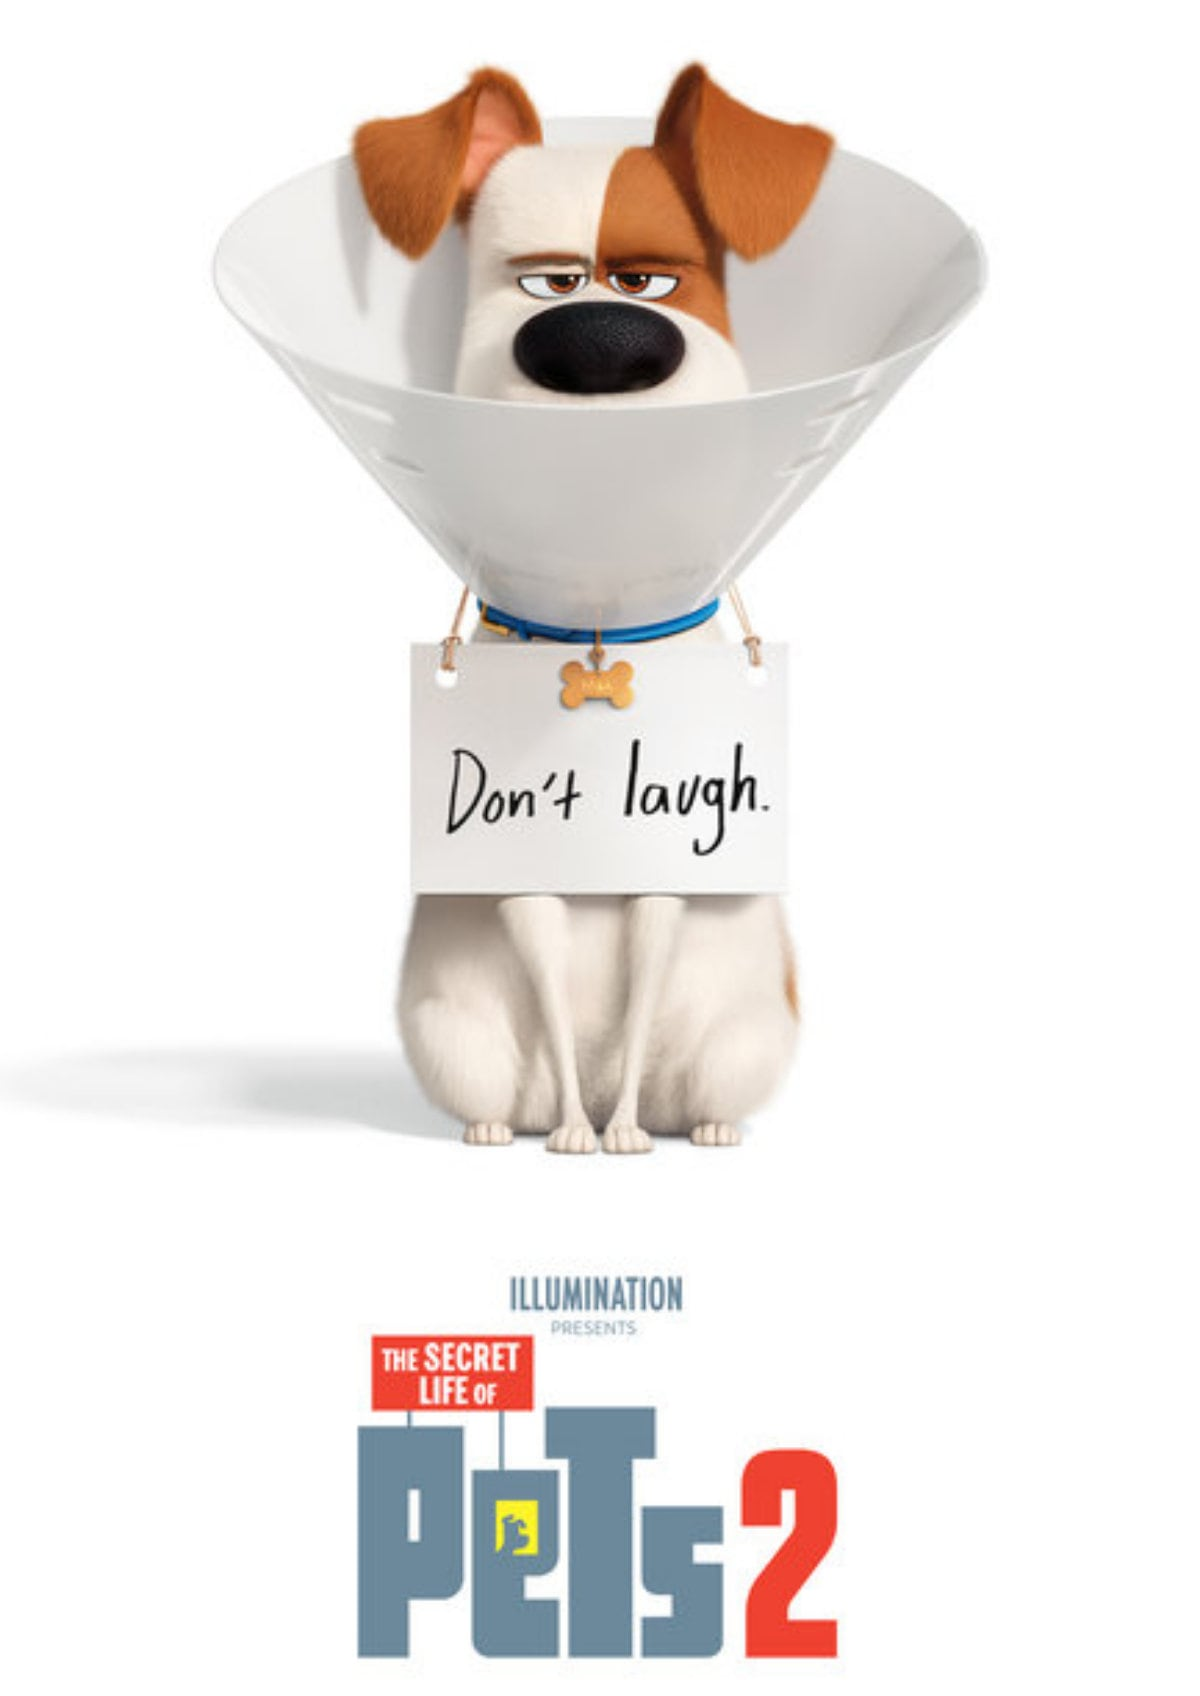 'The Secret Life of Pets 2' movie poster